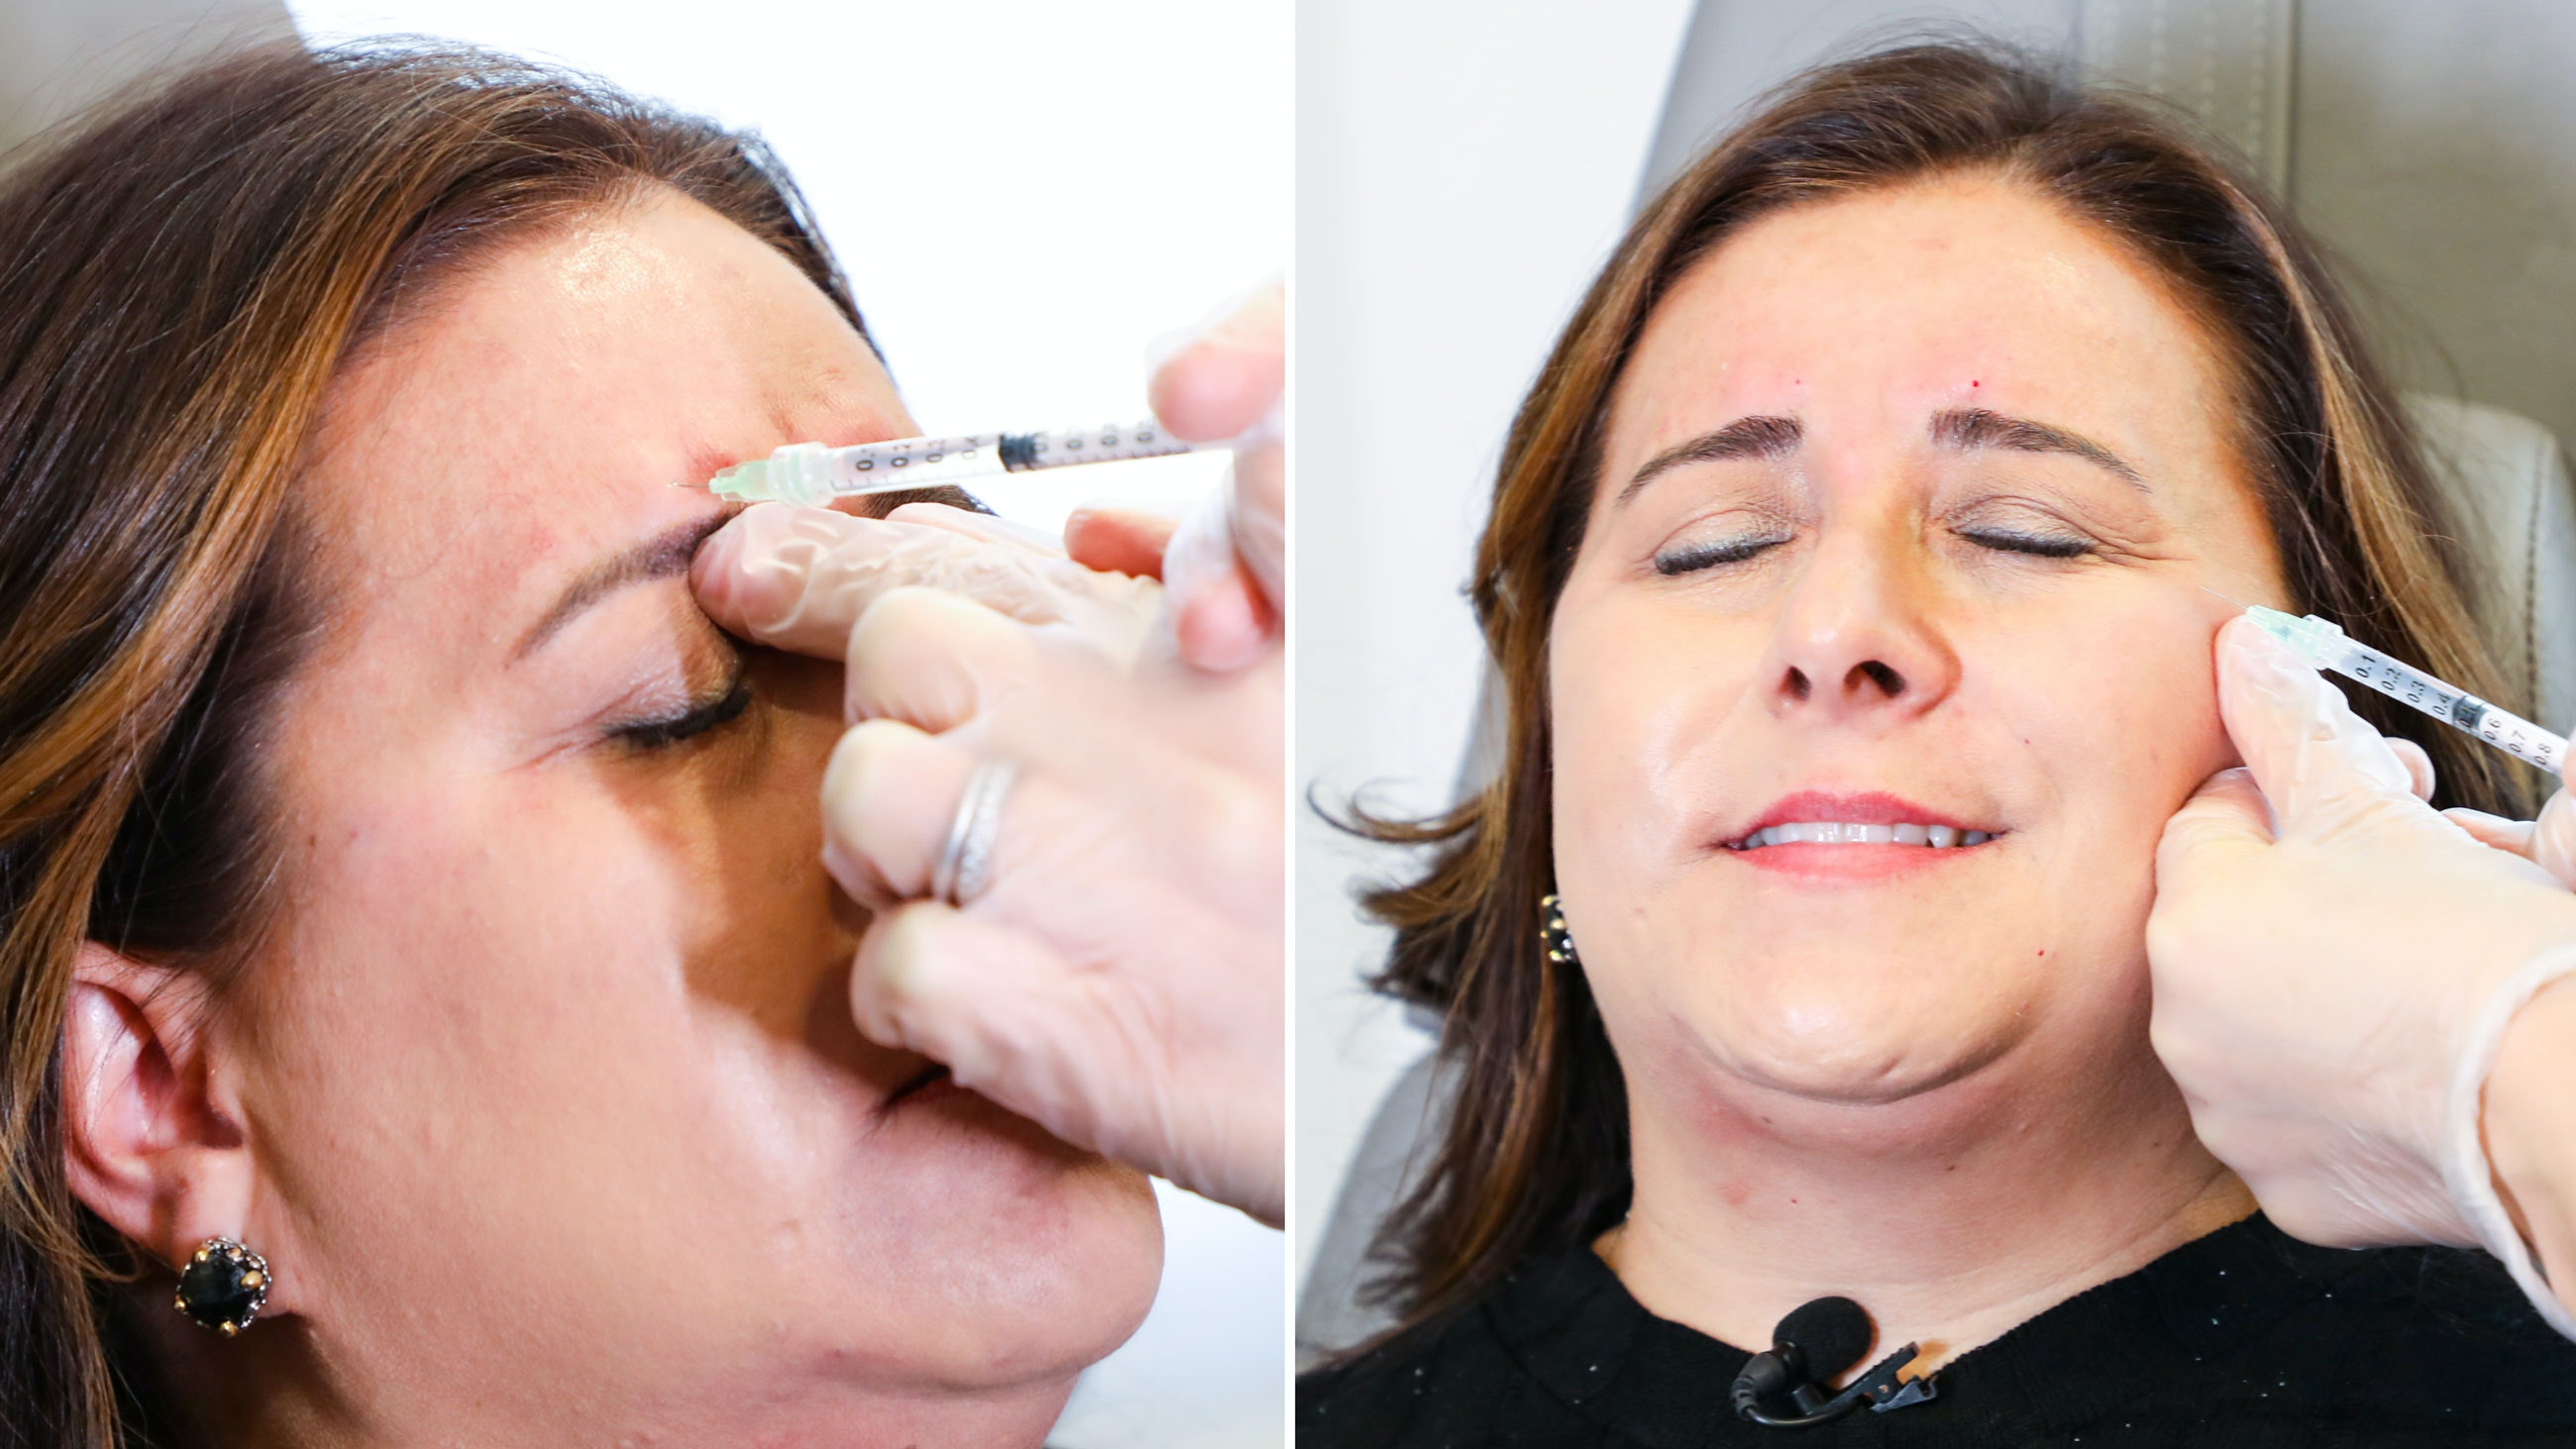 one image of sonia being injected in the forehead. another image of sonia being injected in the upper cheek